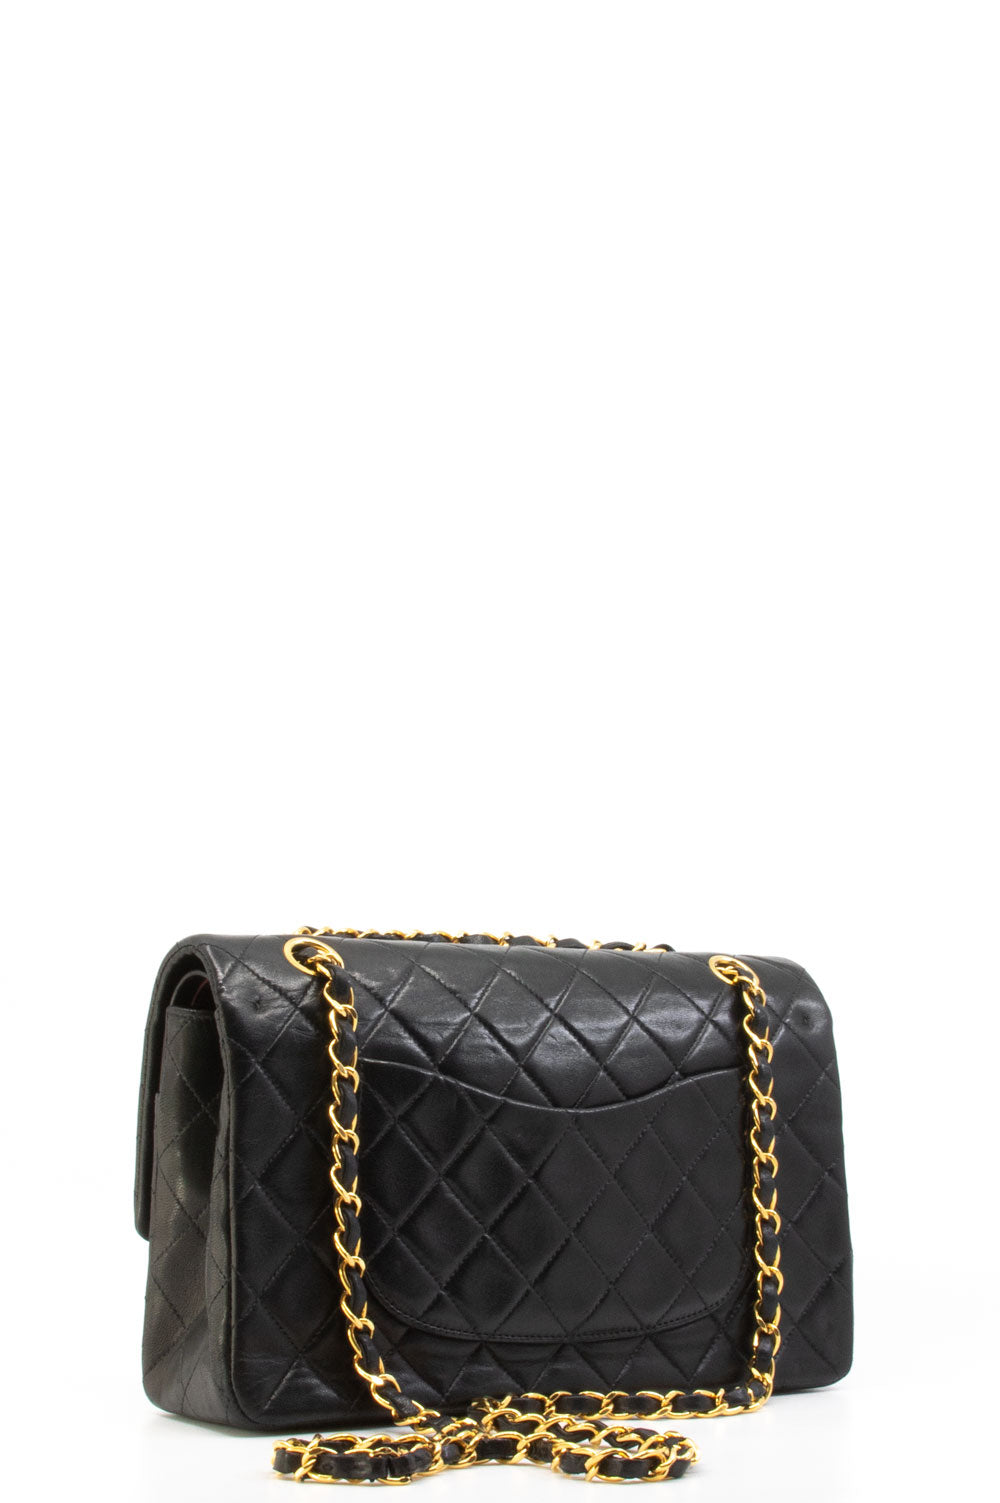 CHANEL Vintage Double Flap Bag Medium